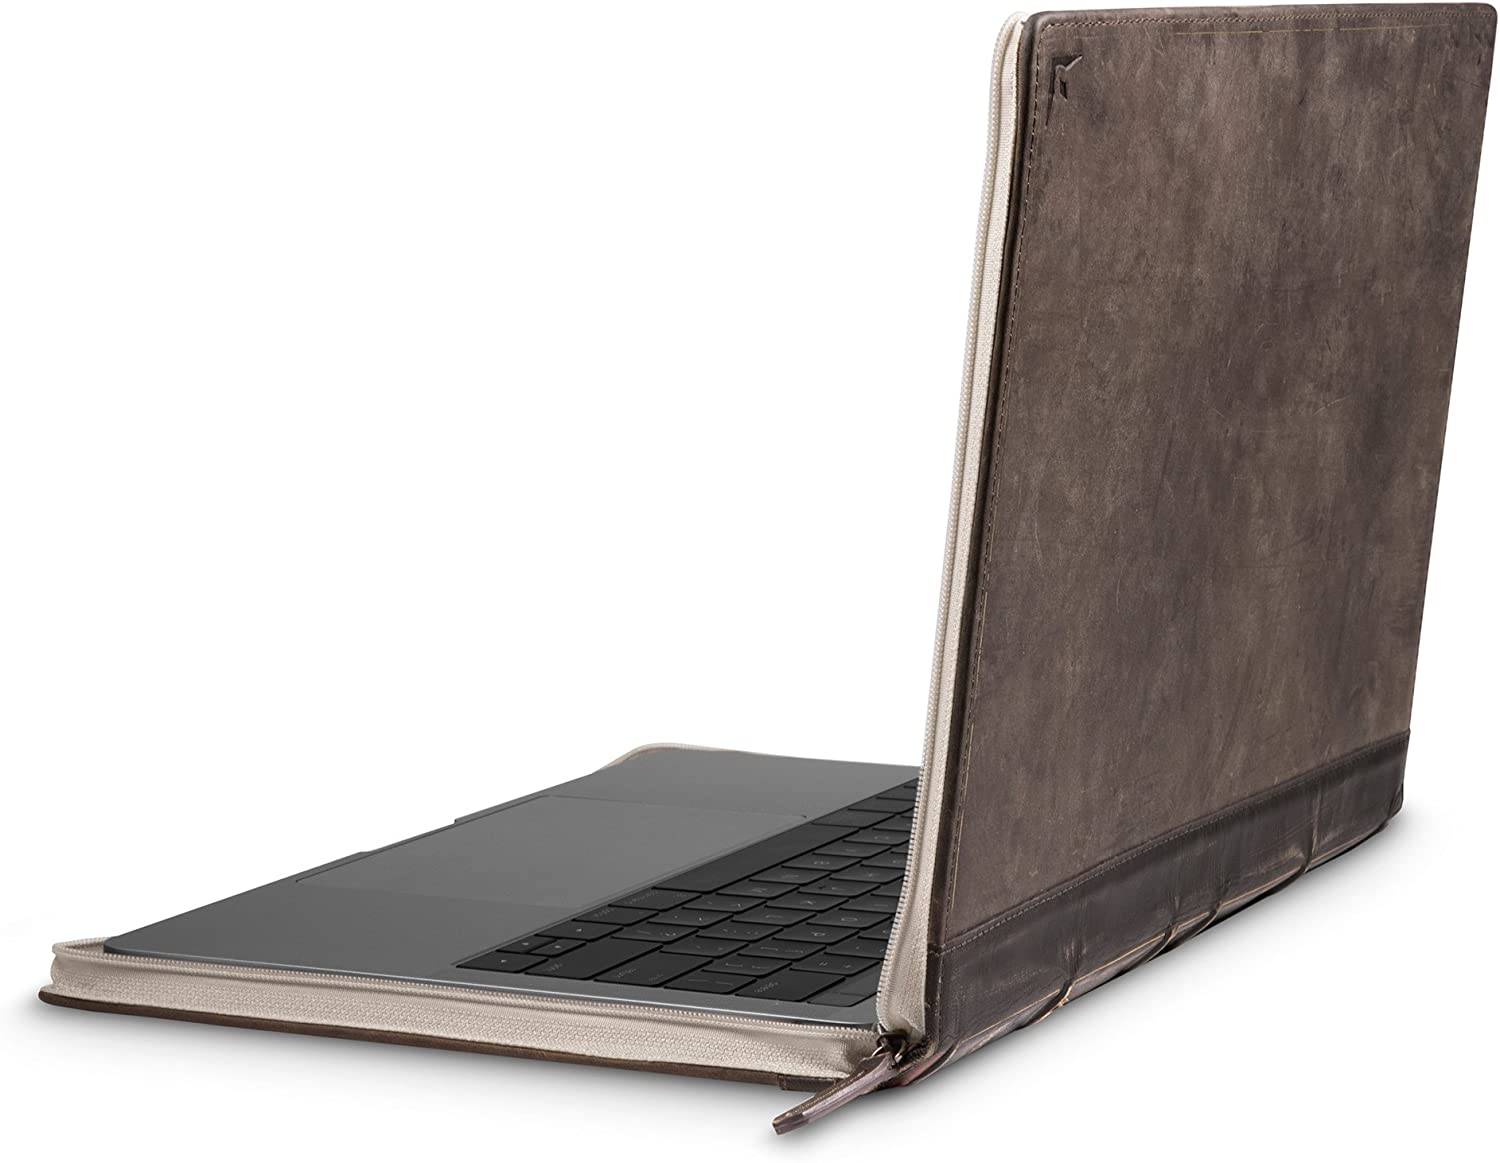 "Twelve South BookBook V2 for MacBook | Vintage Leather Book case/Sleeve with Interior Pocket for 13"" MacBook Pro w/Thunderbolt 3 (USB-C) and 13"" MacBook Air Retina"